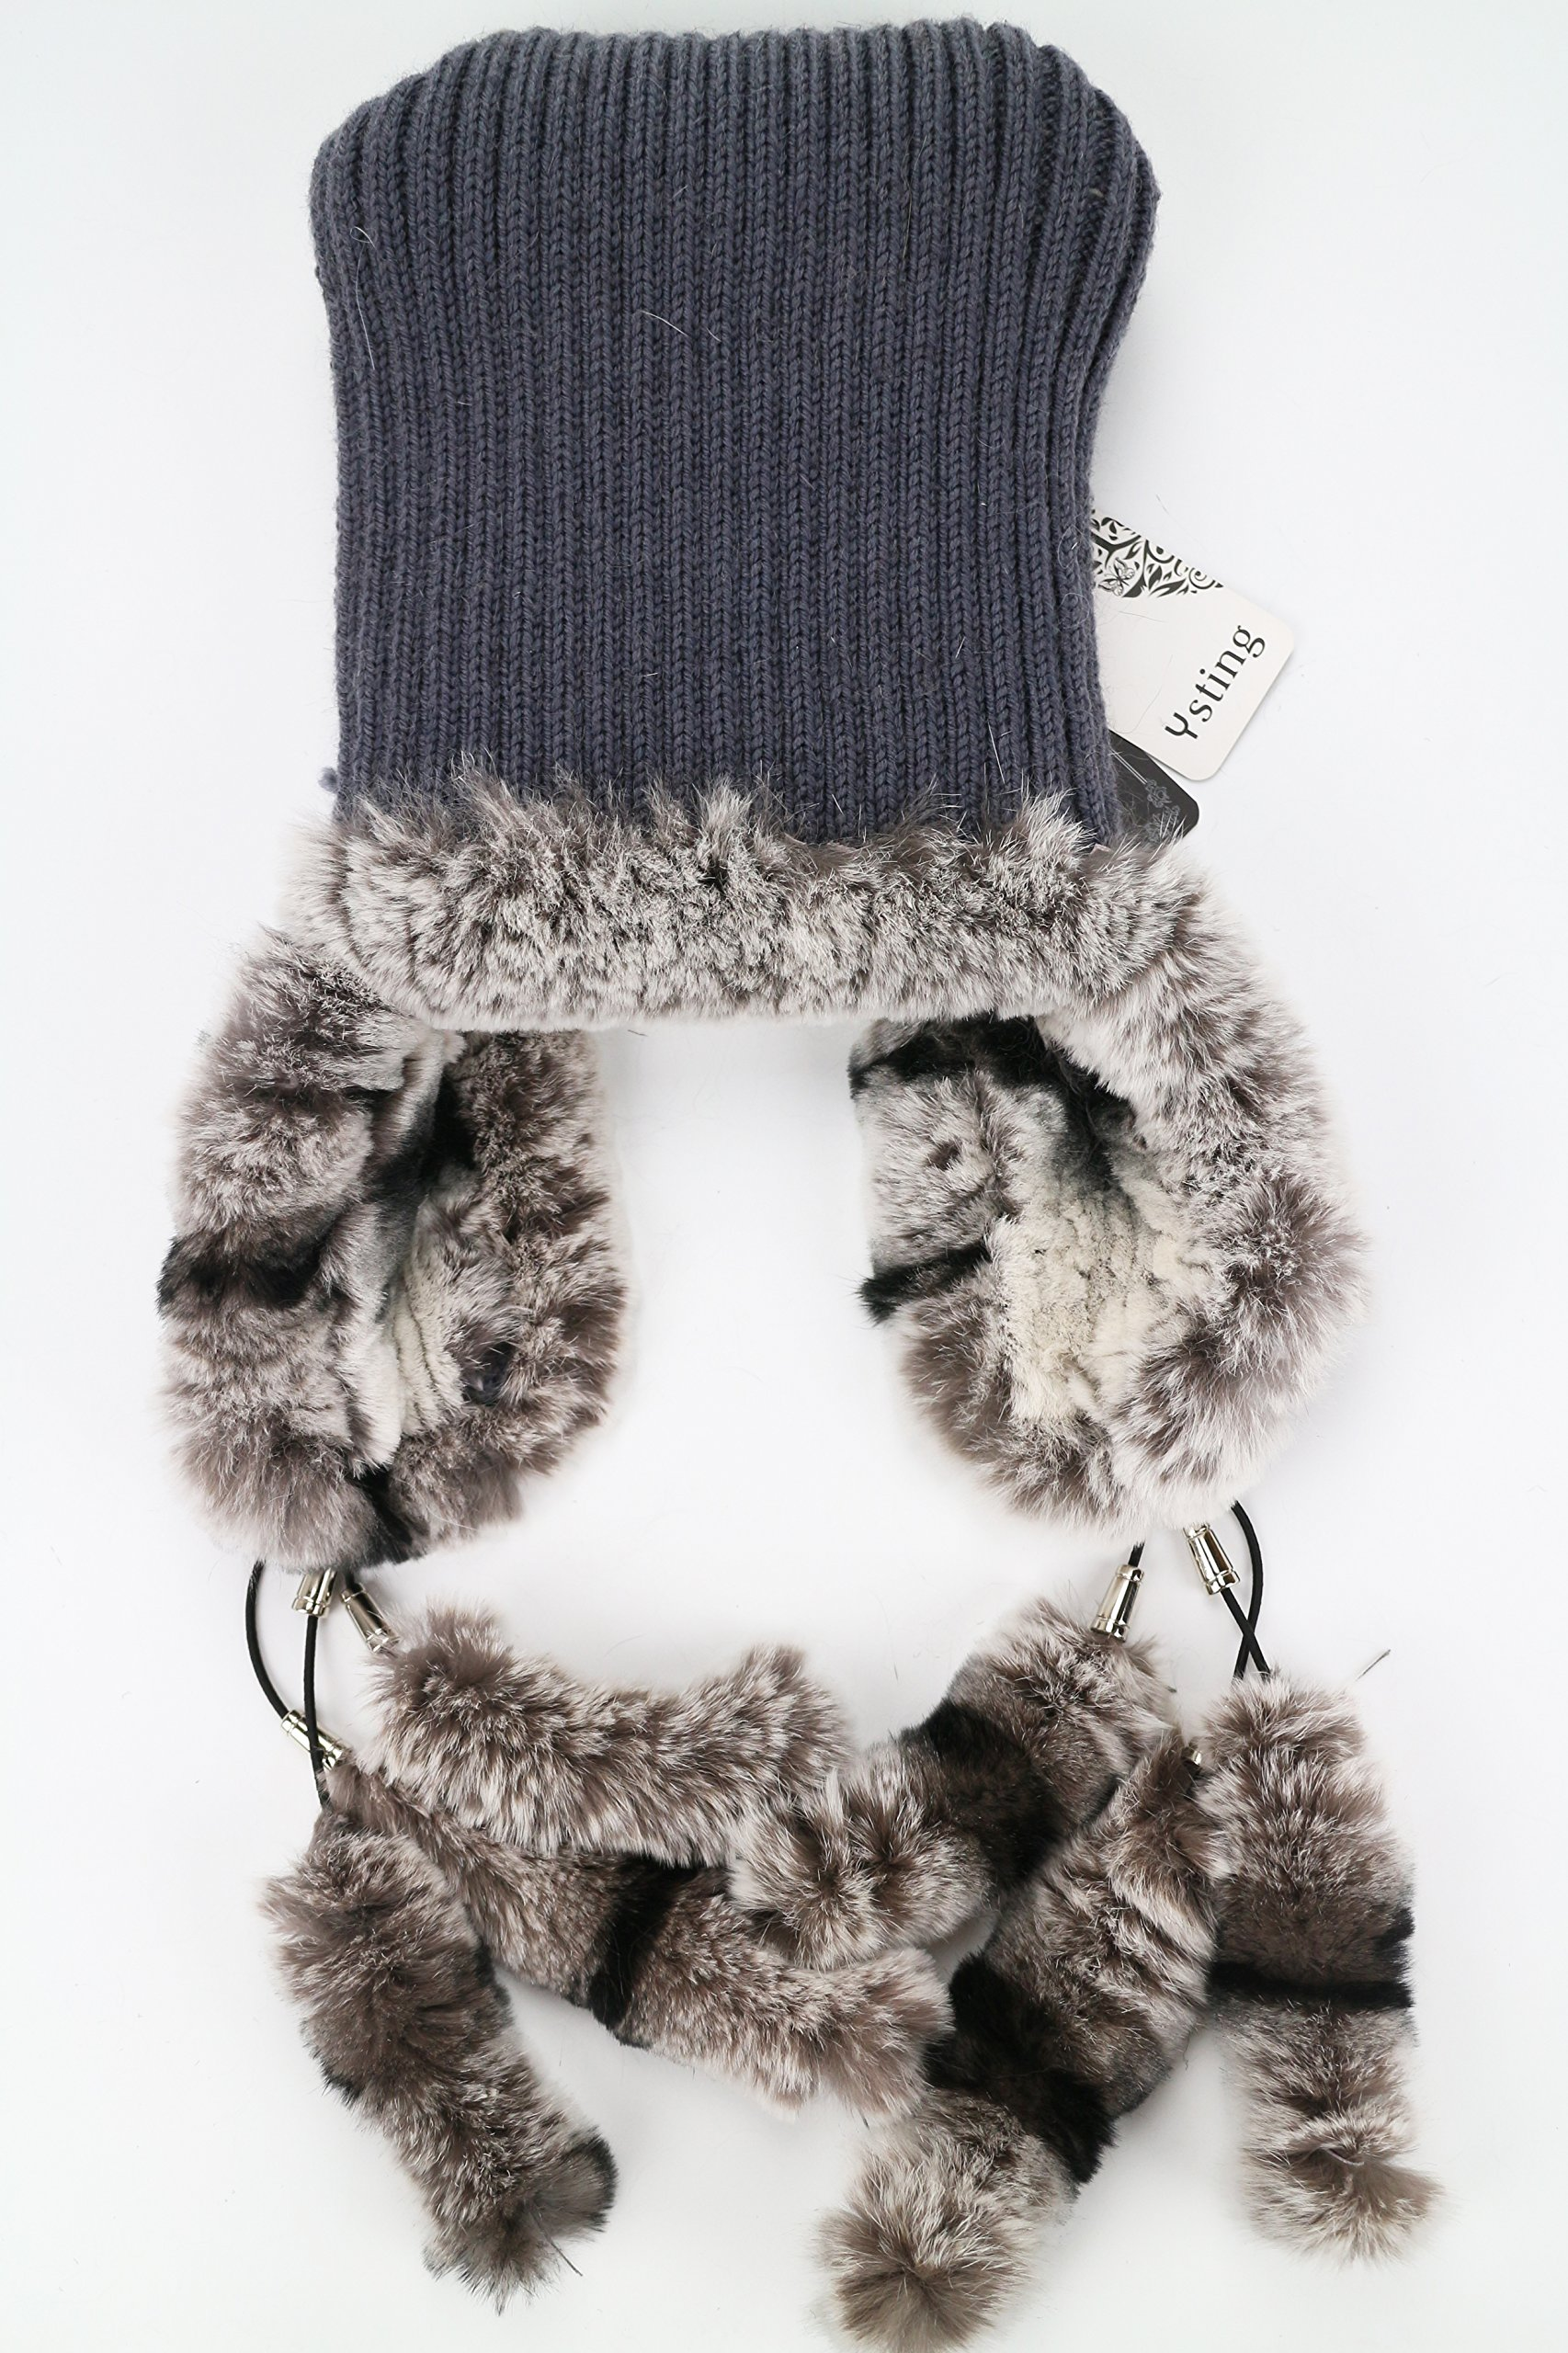 Ysting Womens Knit Rex Rabbit Fur Beanie Hat with Silver Fox Fur Top Natural Fur Hats Earmuff (A) by Ysting&CO (Image #5)